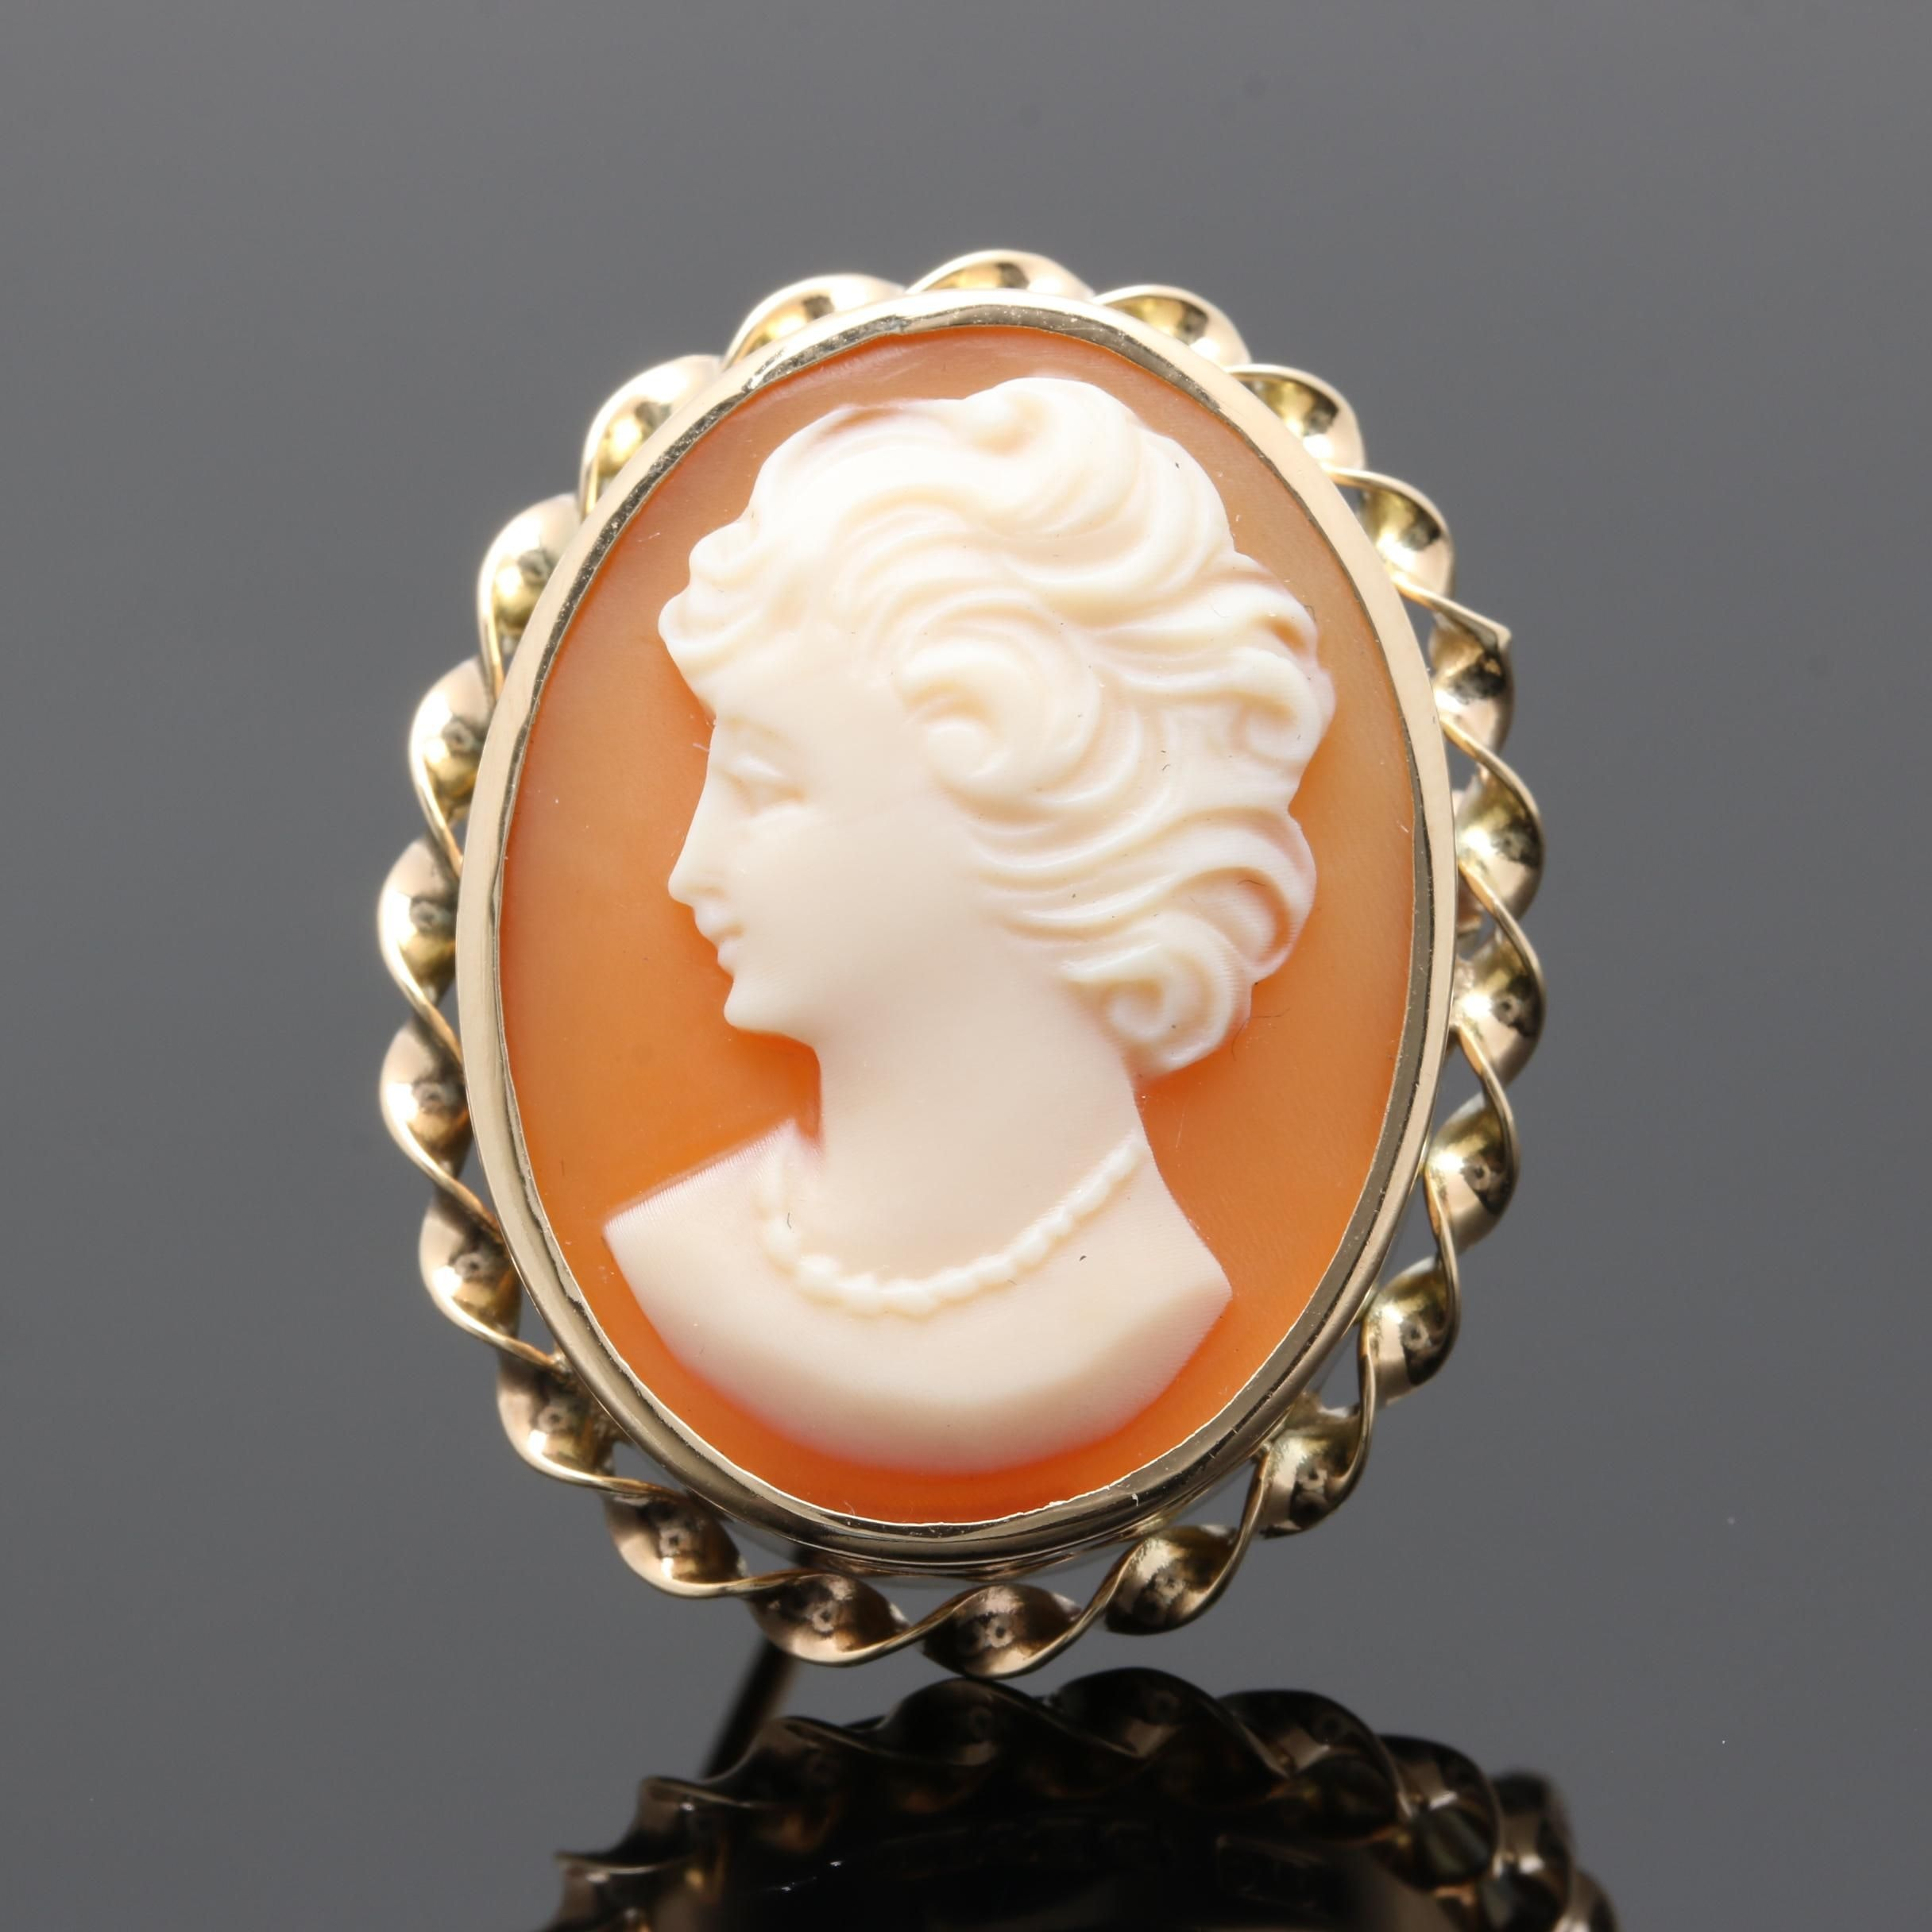 10K Yellow Gold Helmet Shell Cameo Brooch